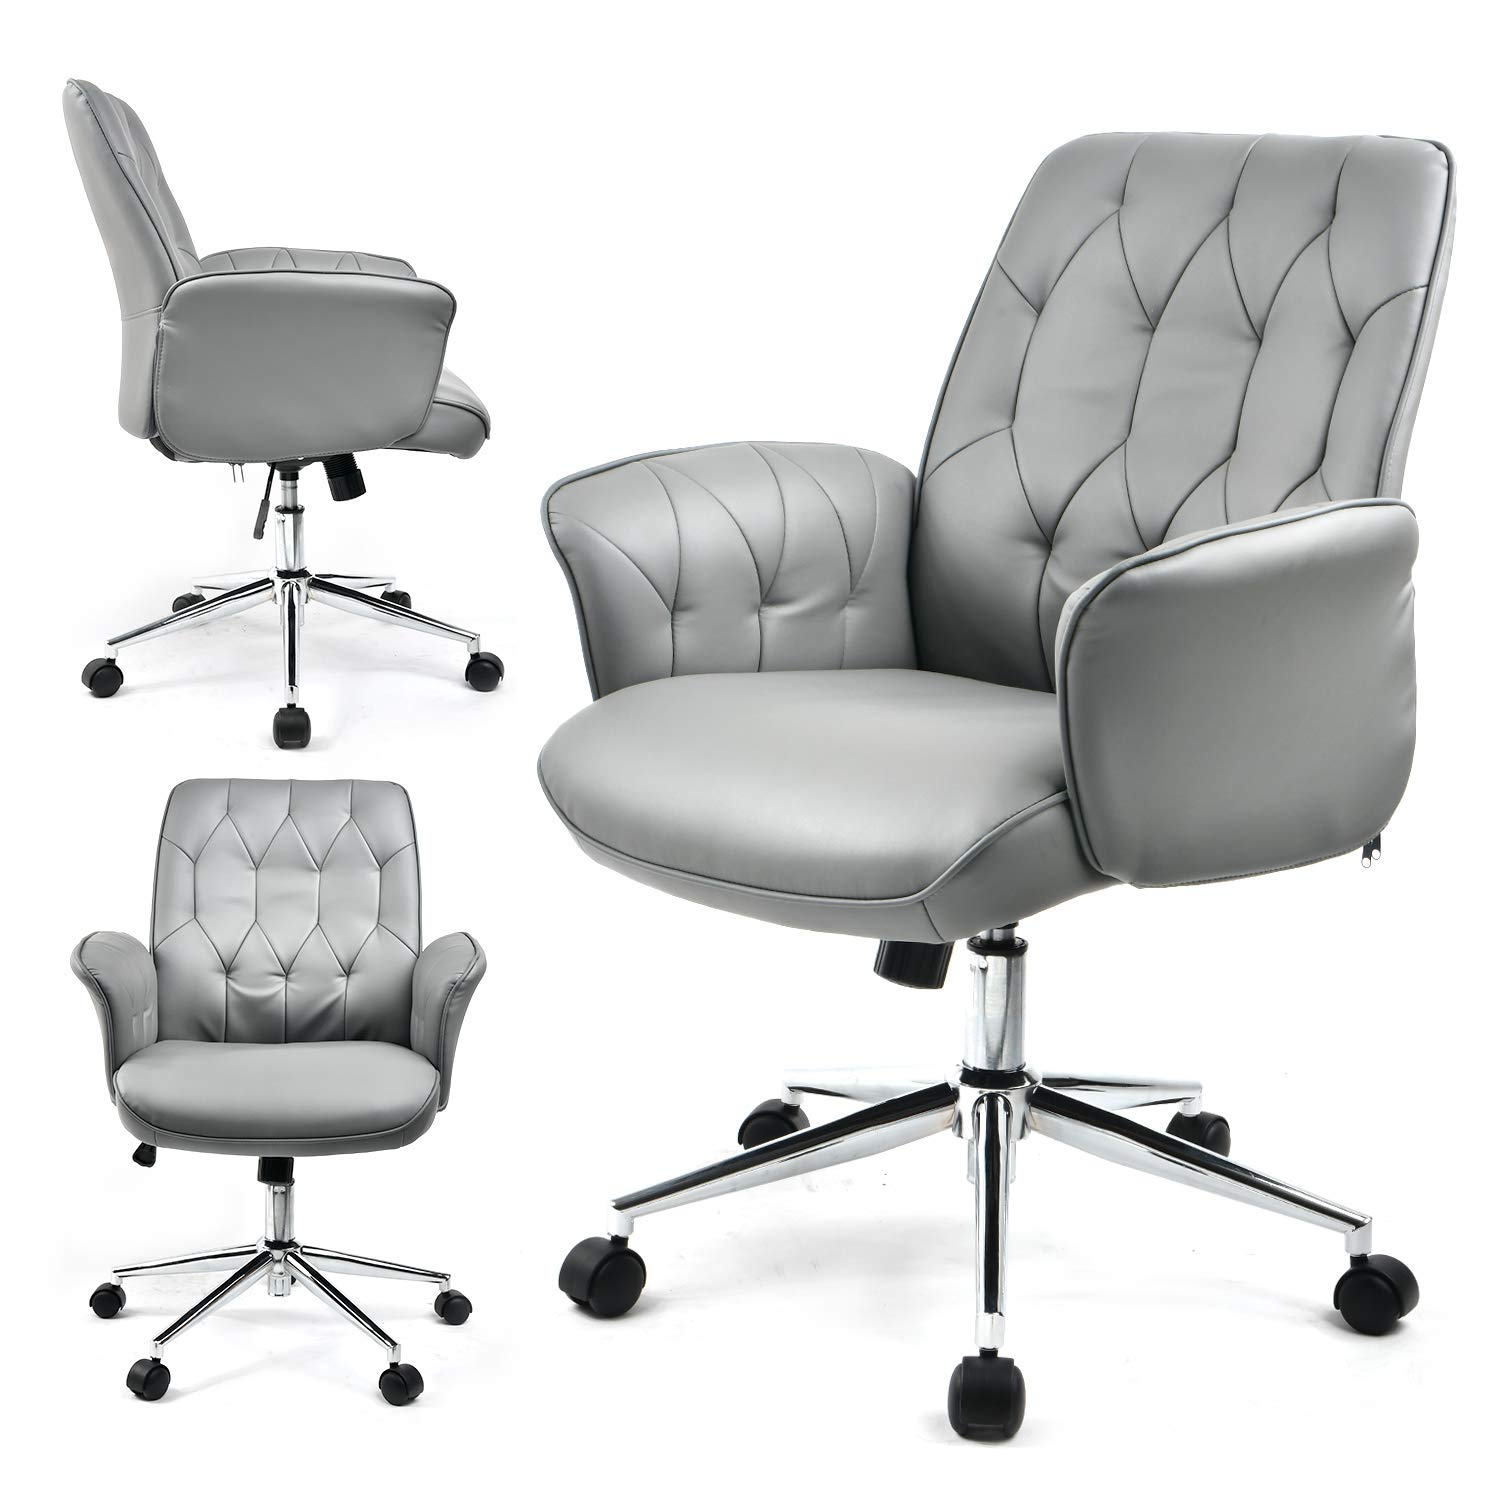 COMHOMA Modern Home Office Chair Vegan Leather Upholstered Executive Conference Stylish Design Adjustable Mid-Back Ergonomic Desk Chair Gray by COMHOMA